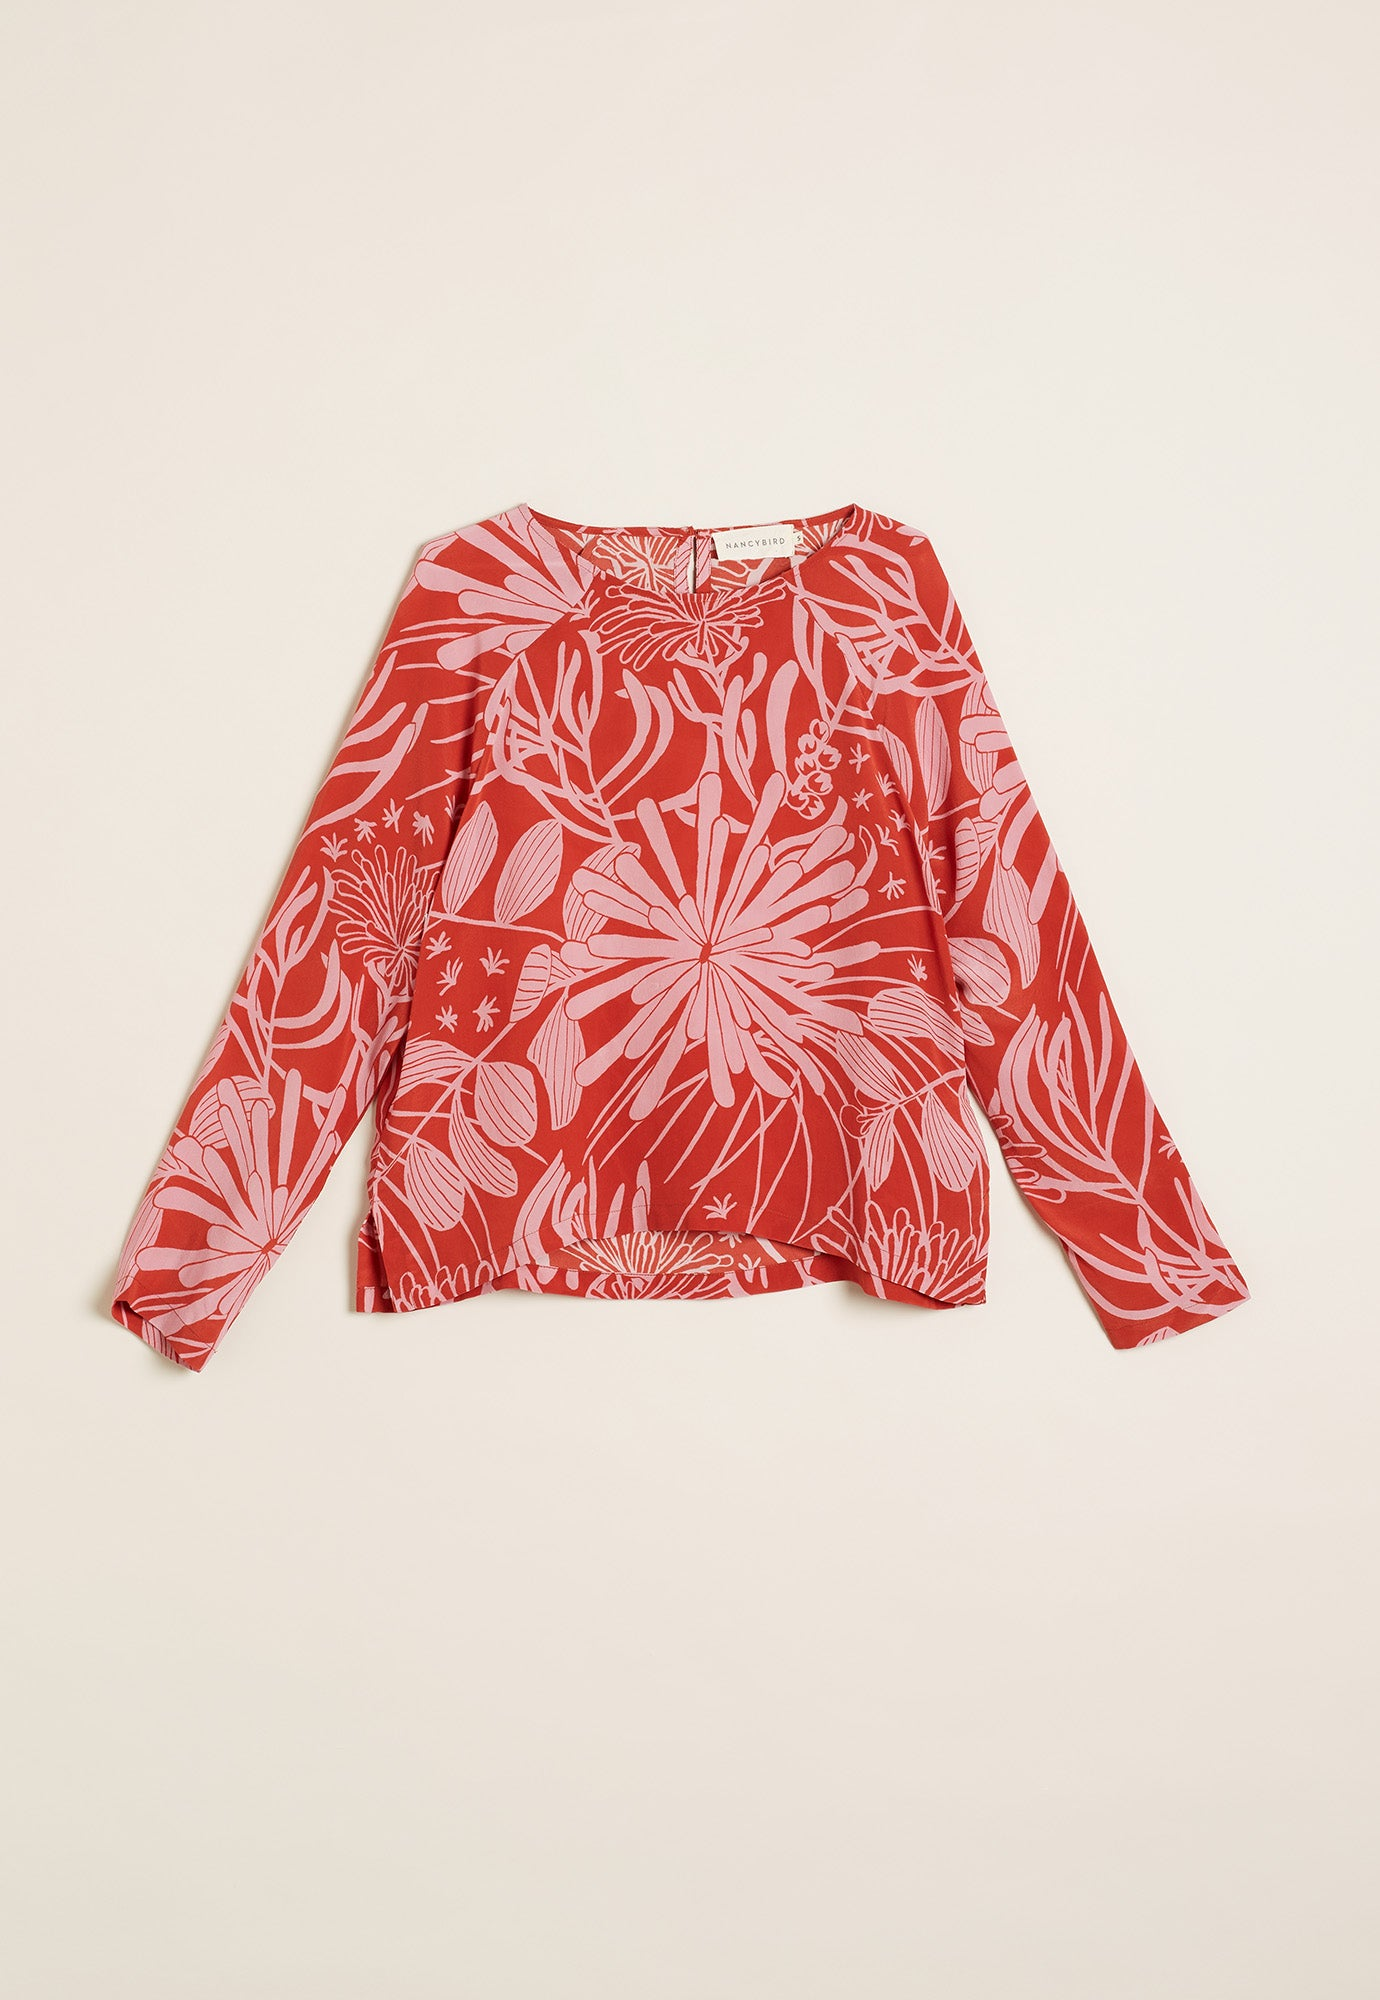 Nancybird Spinifex raglan top - Spinifex